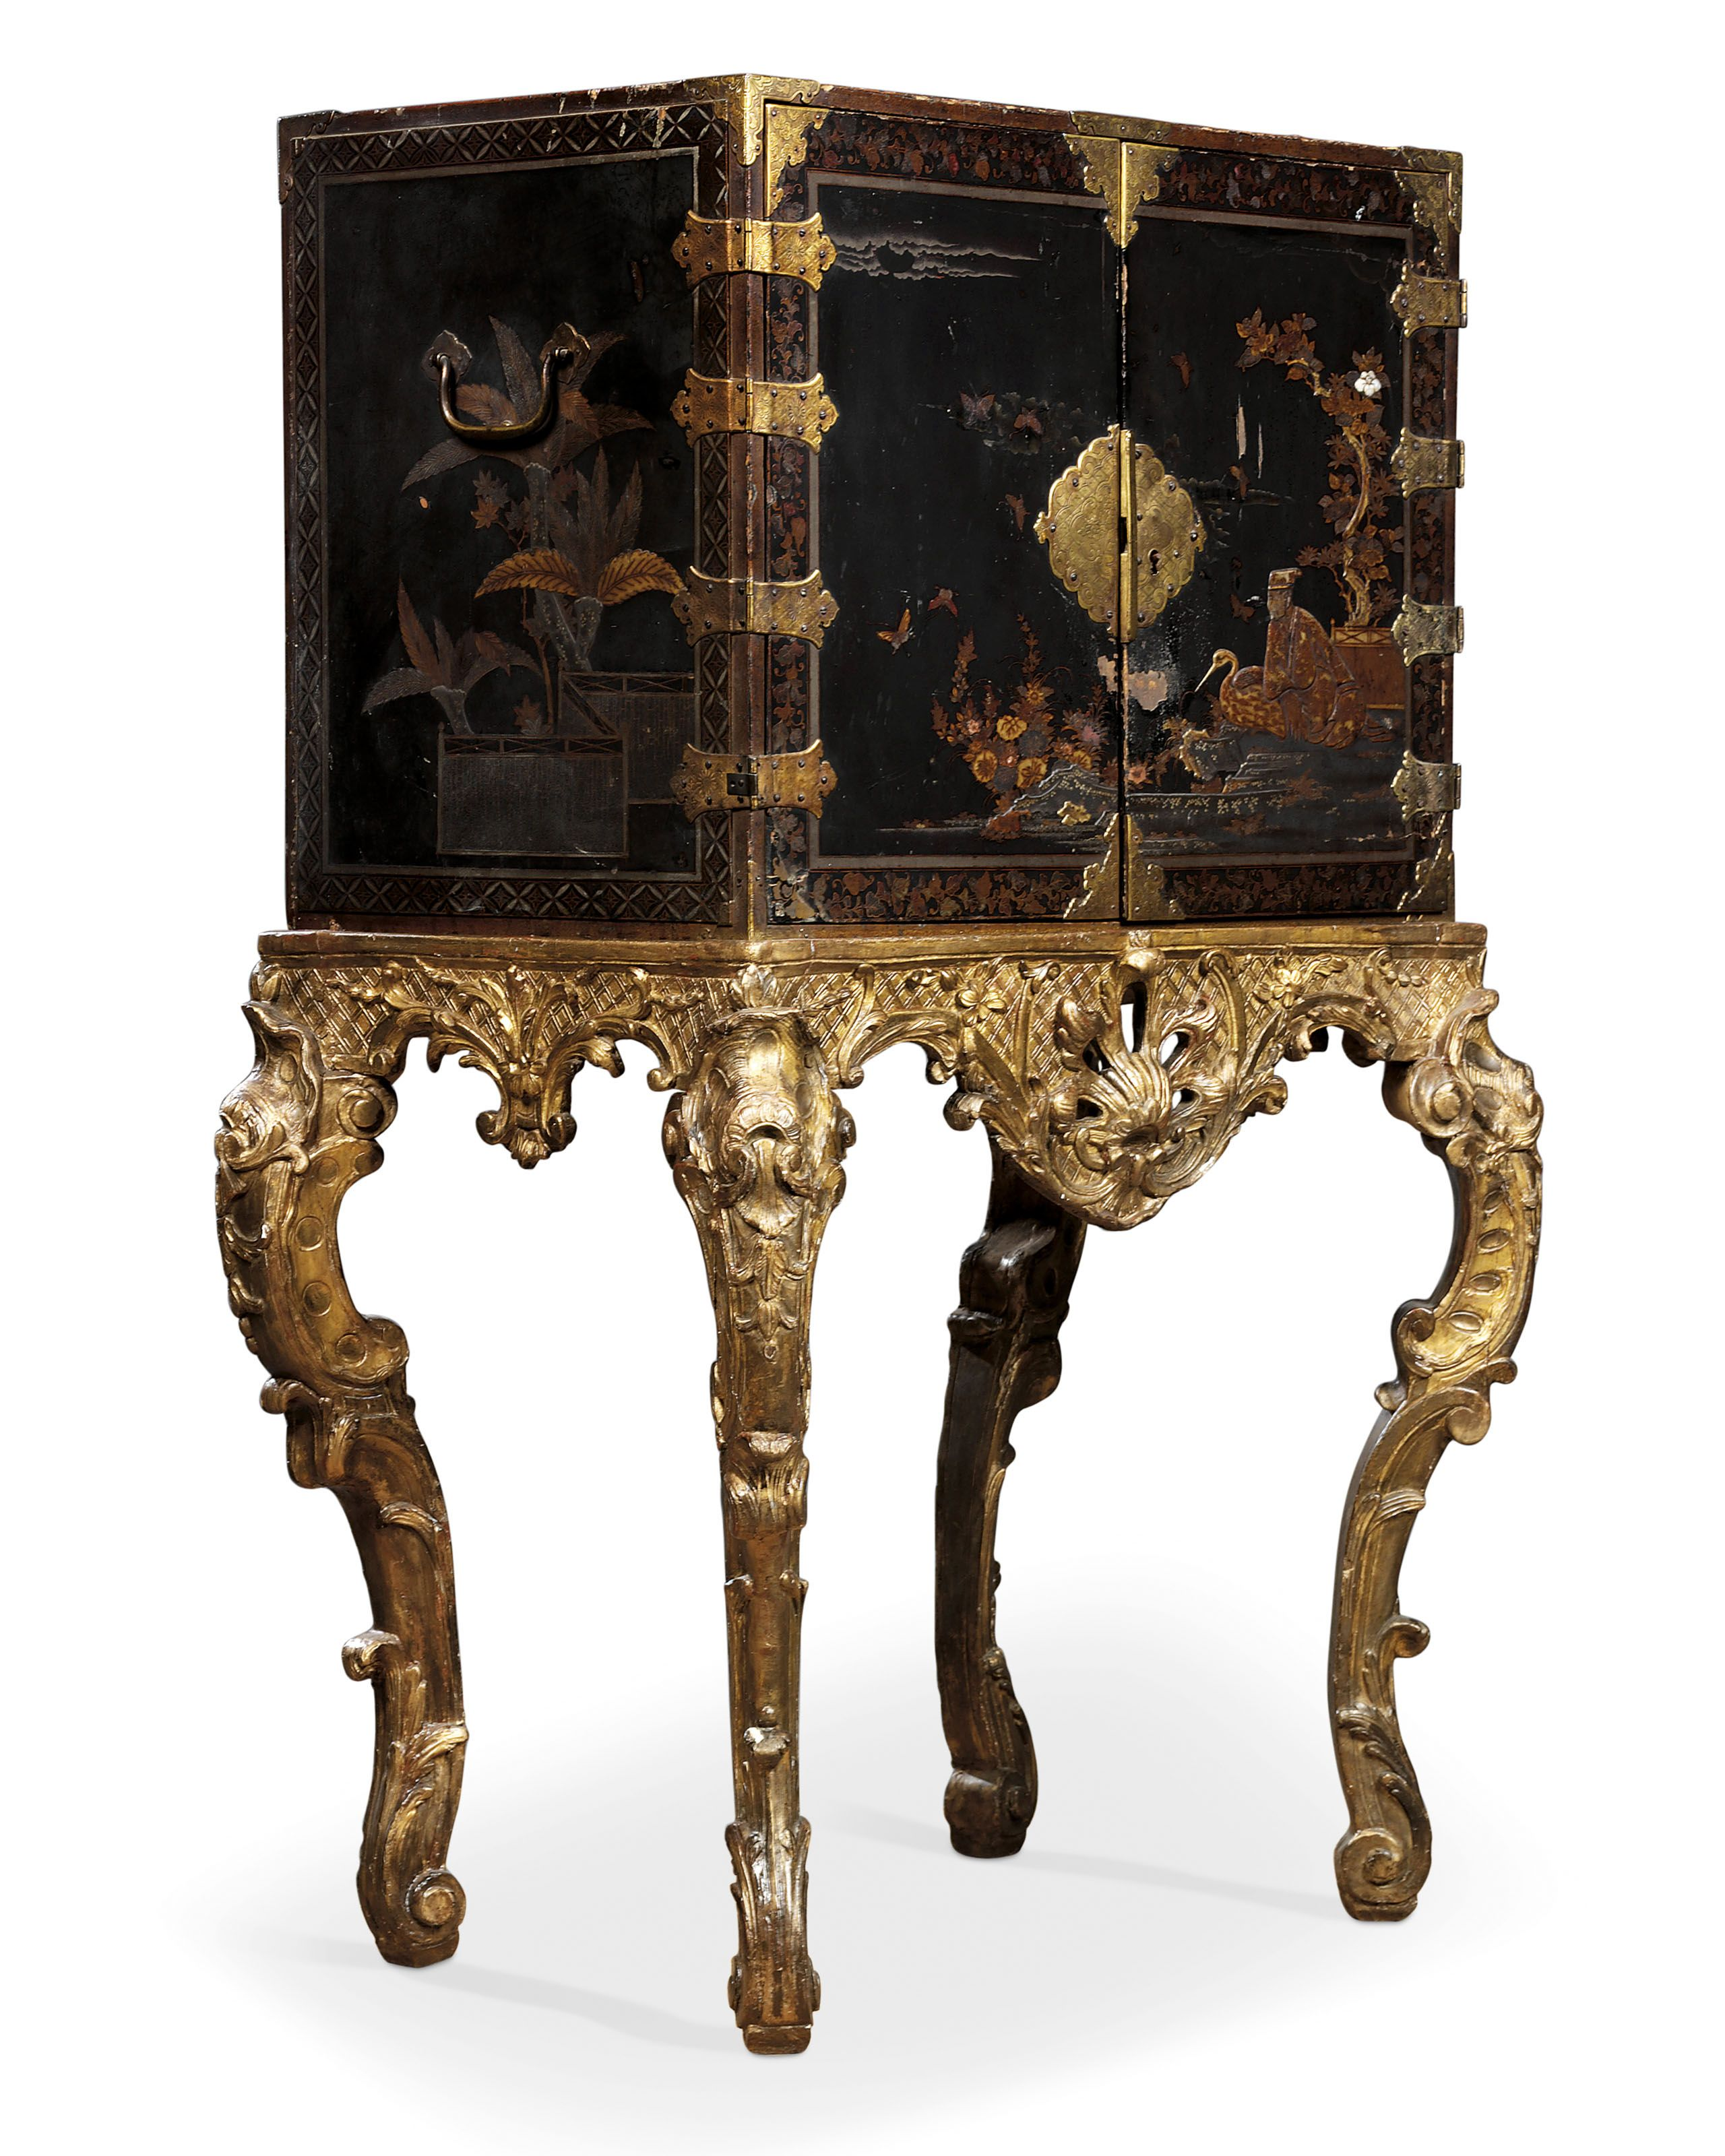 c1720 A RÉGENCE JAPANESE LACQUER AND GILTWOOD